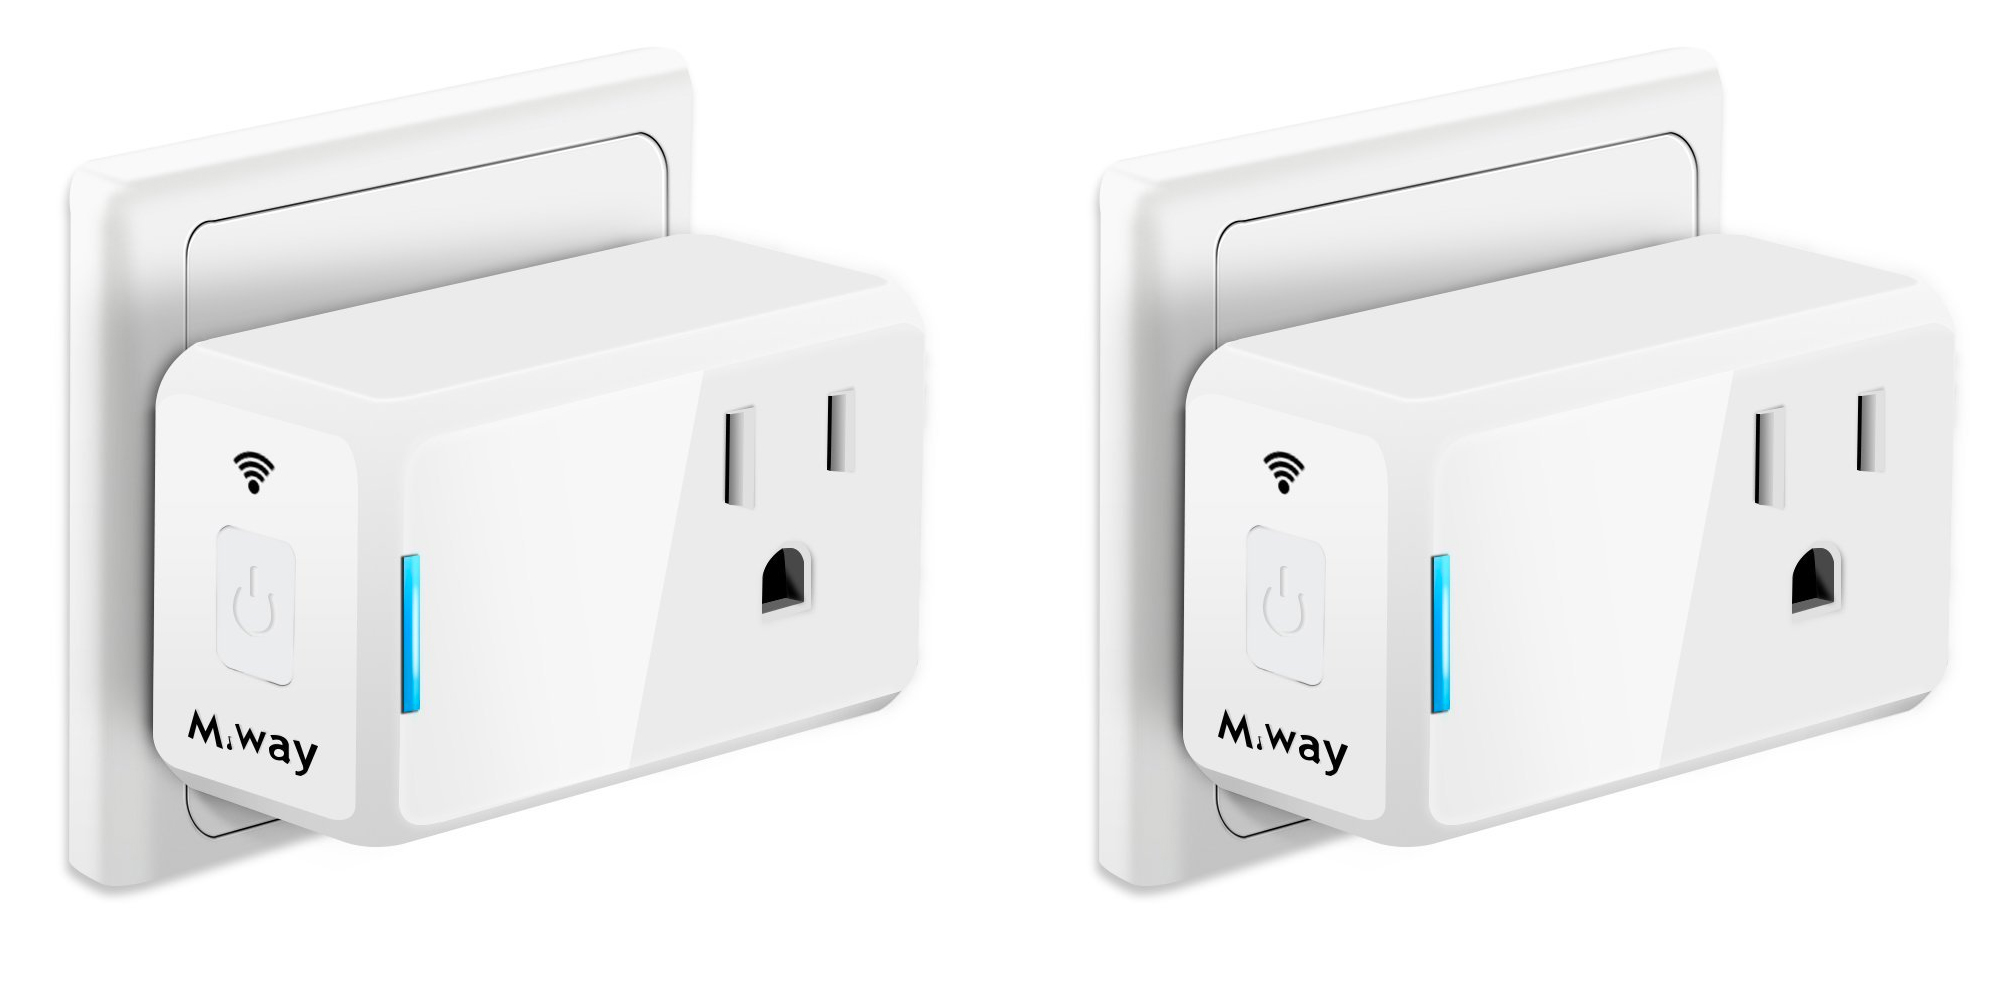 Control any device in your house w/ this Alexa compatible smart plug: $11 (Reg. $20)